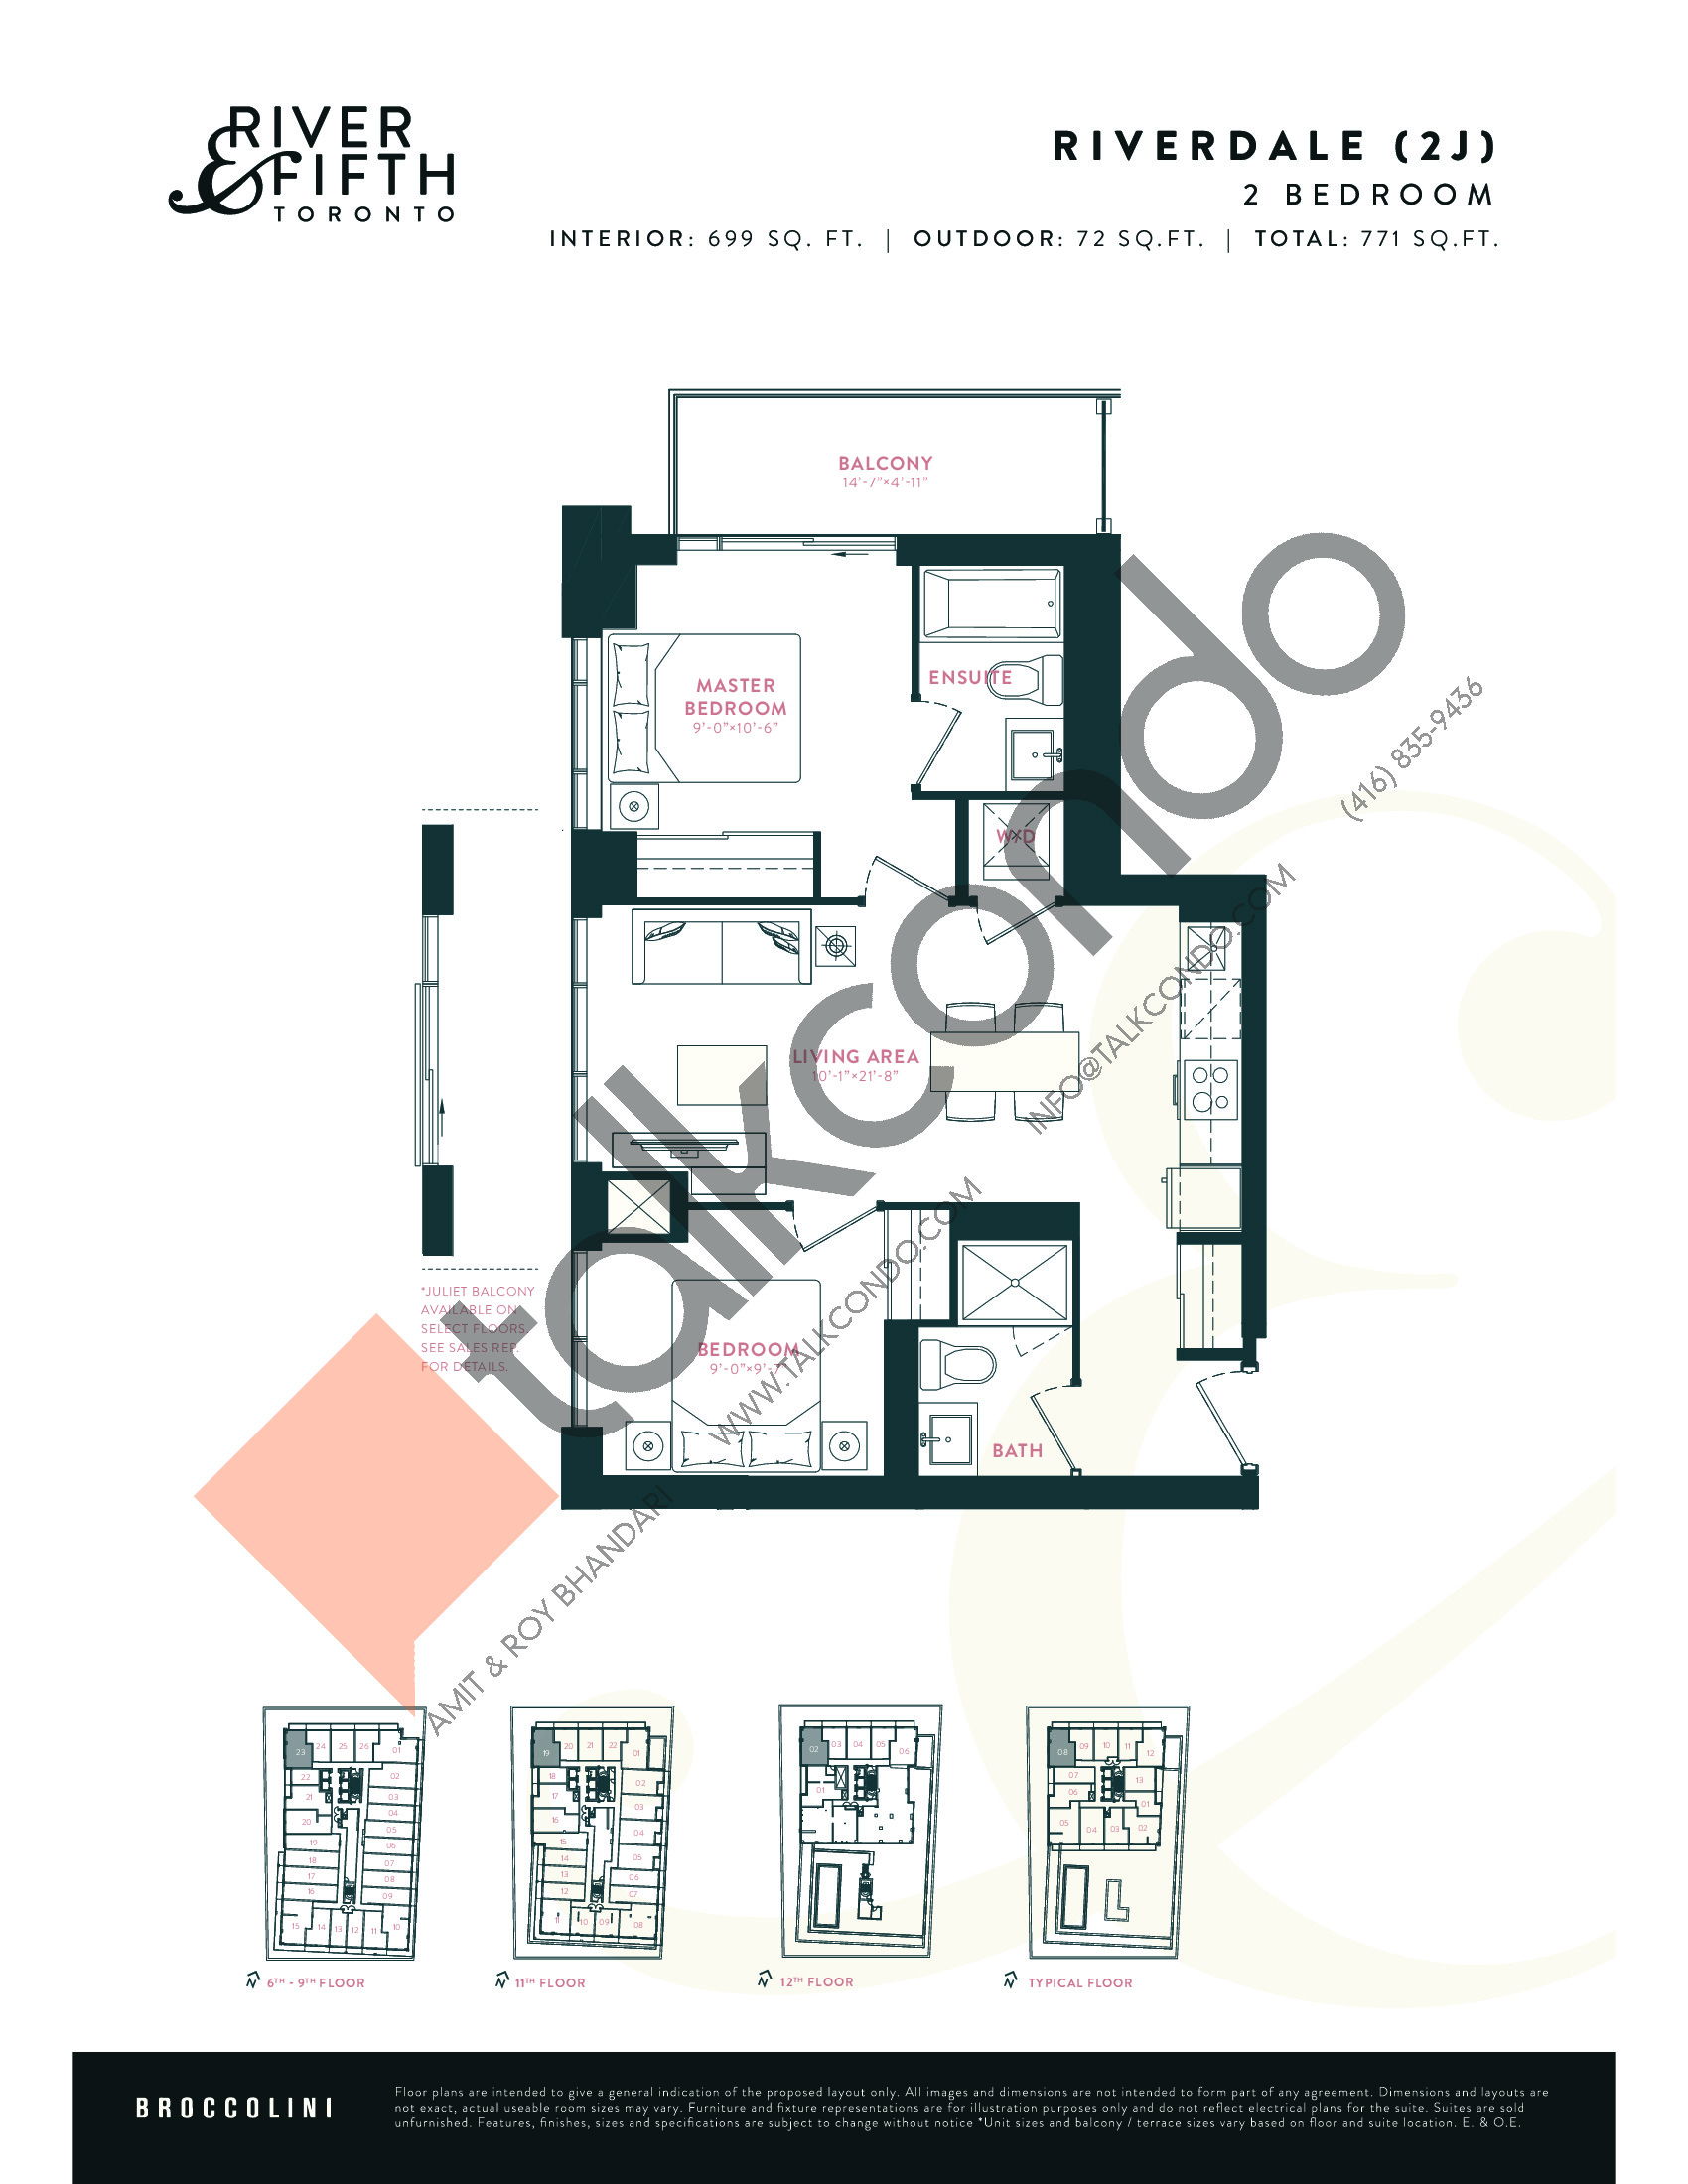 Riverdale (2J) Floor Plan at River & Fifth Condos - 699 sq.ft